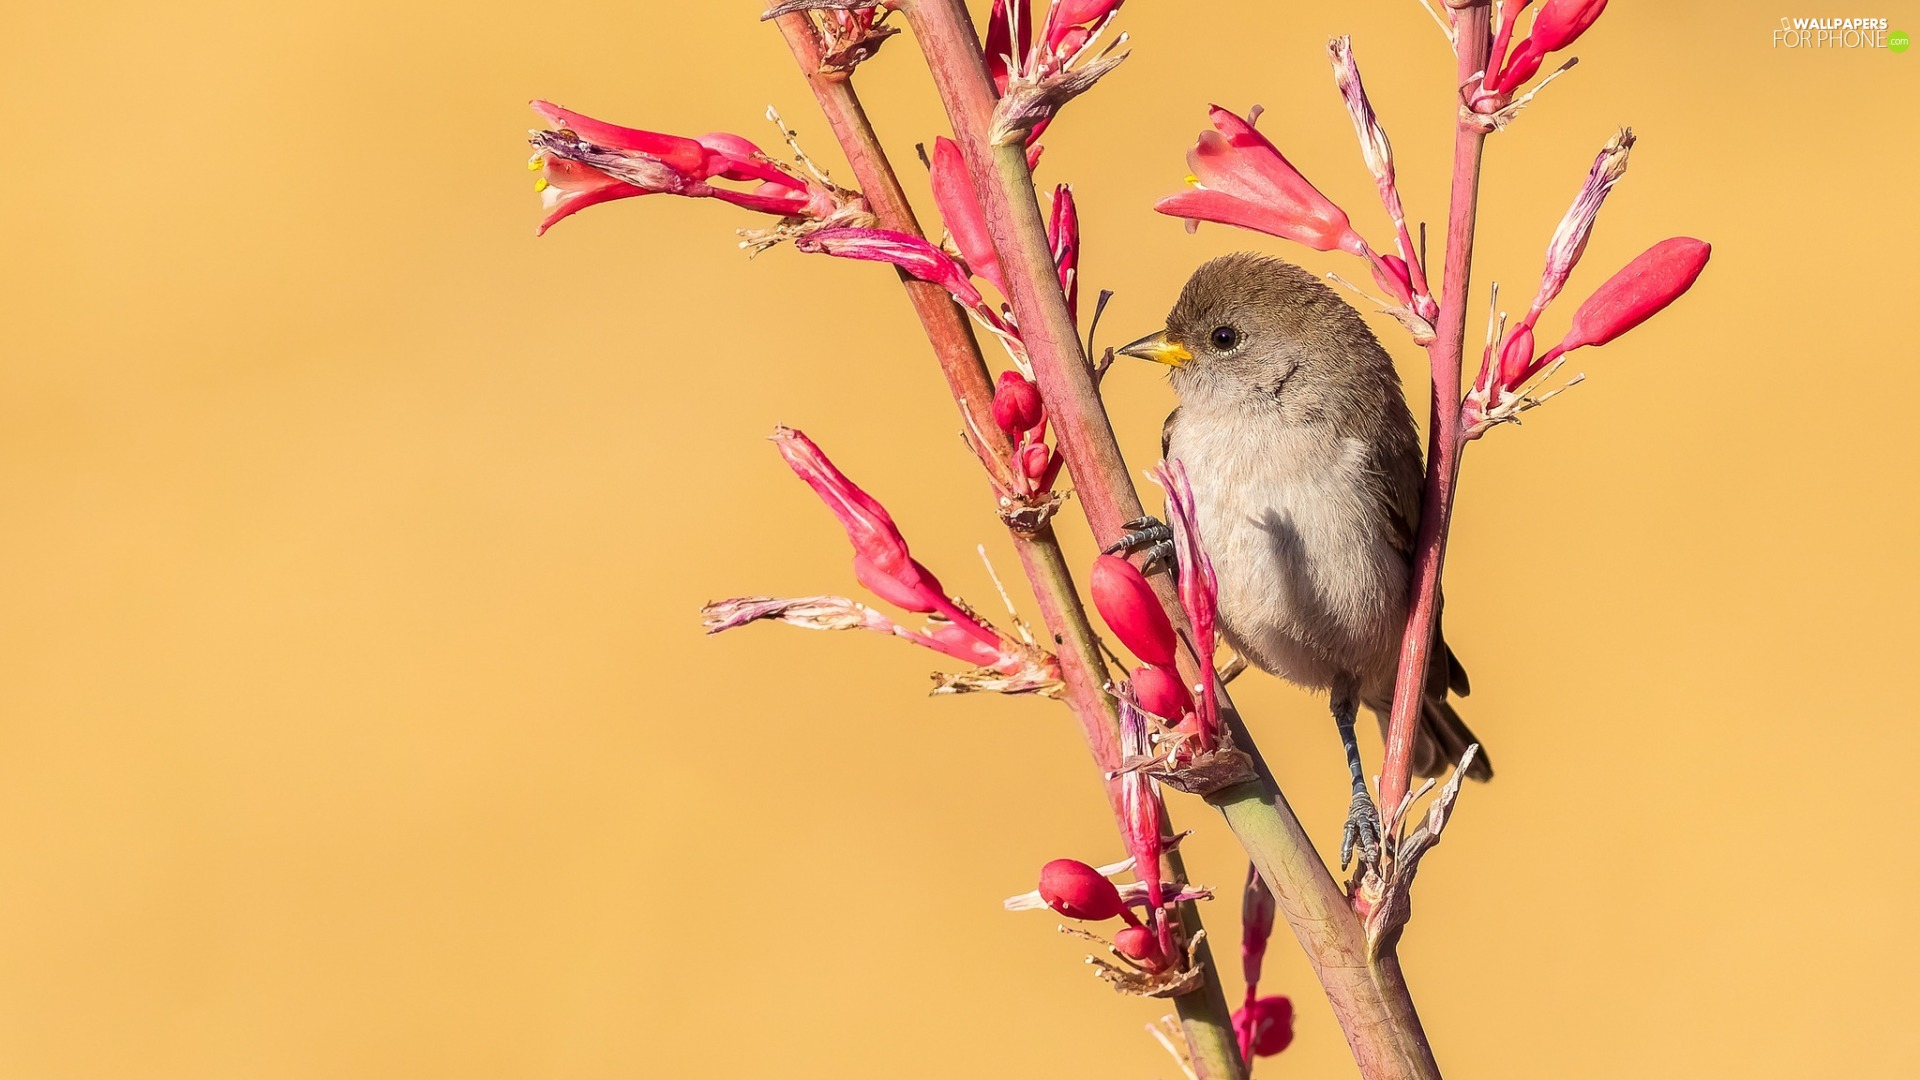 Bird, Red, Flowers, Twigs